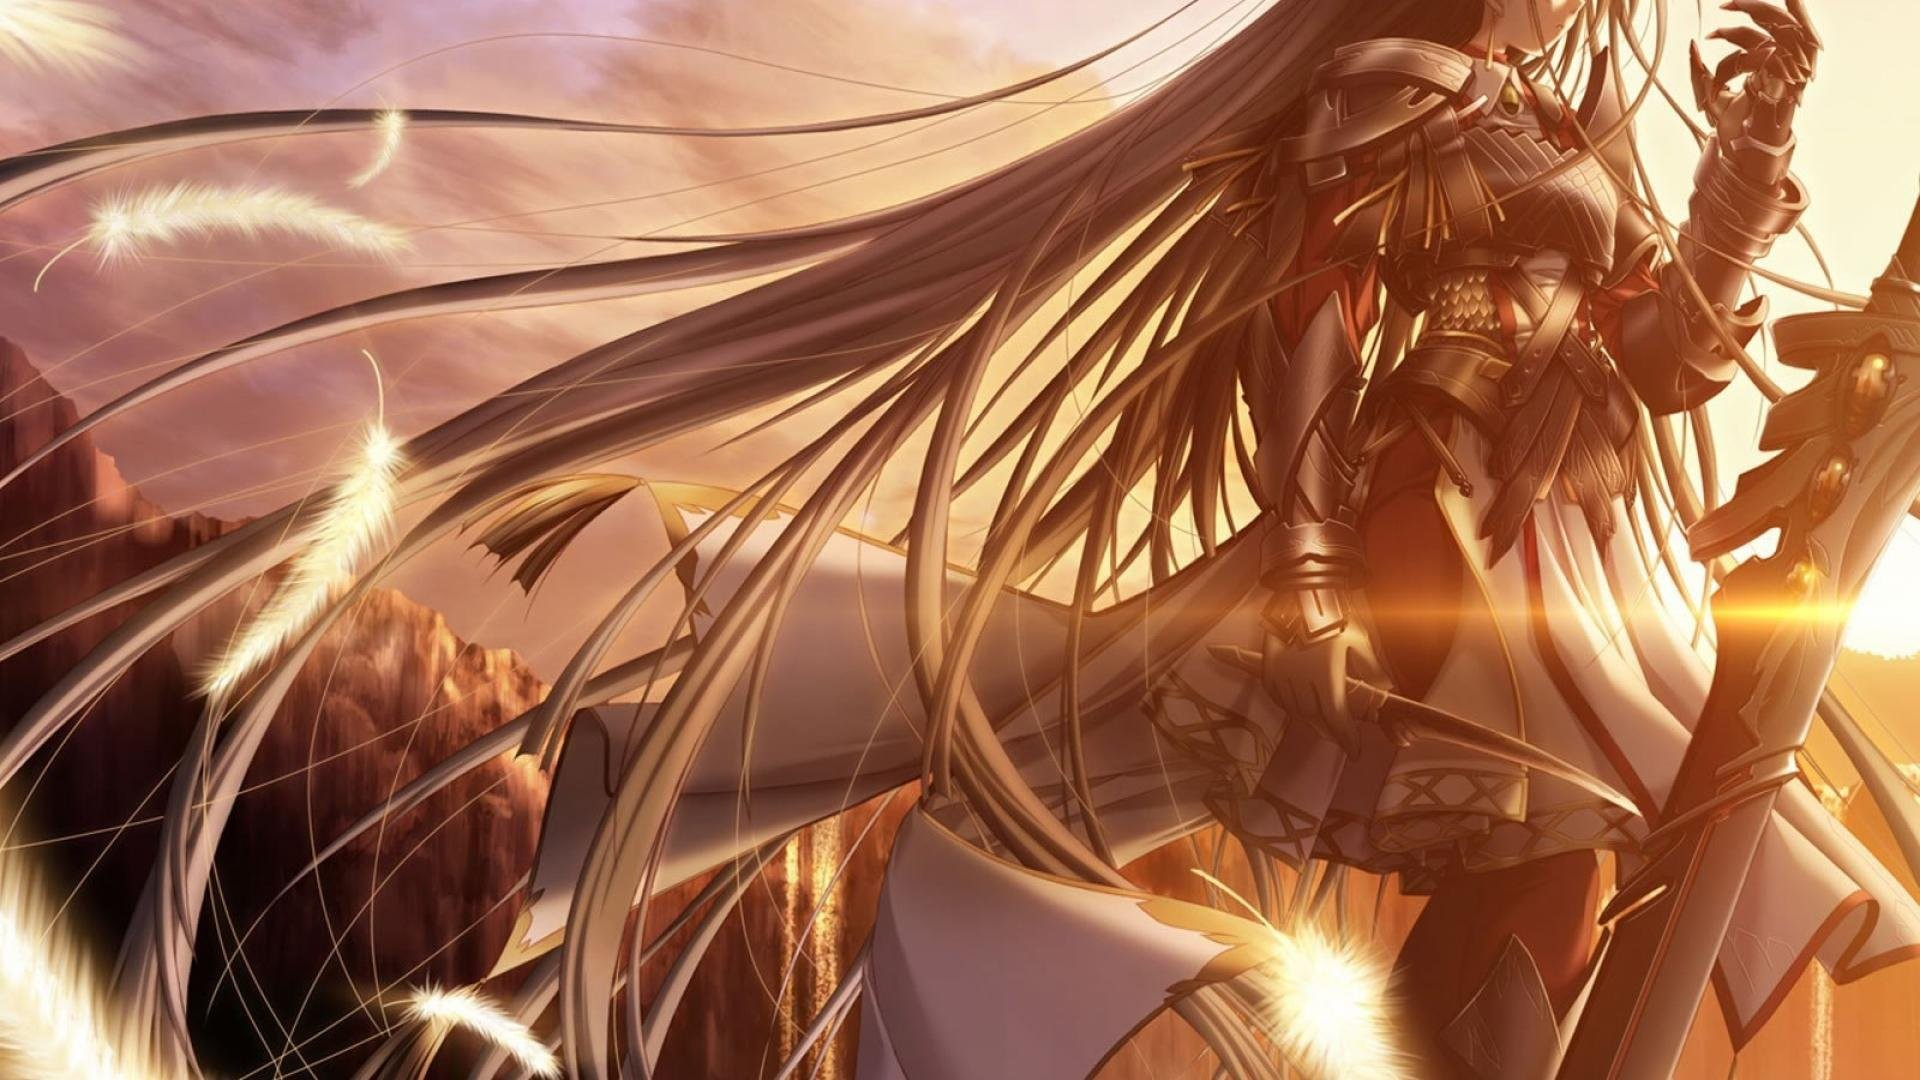 Beautiful Anime Characters. SHARE. TAGS: Images Female Warrior Fantasy Anime